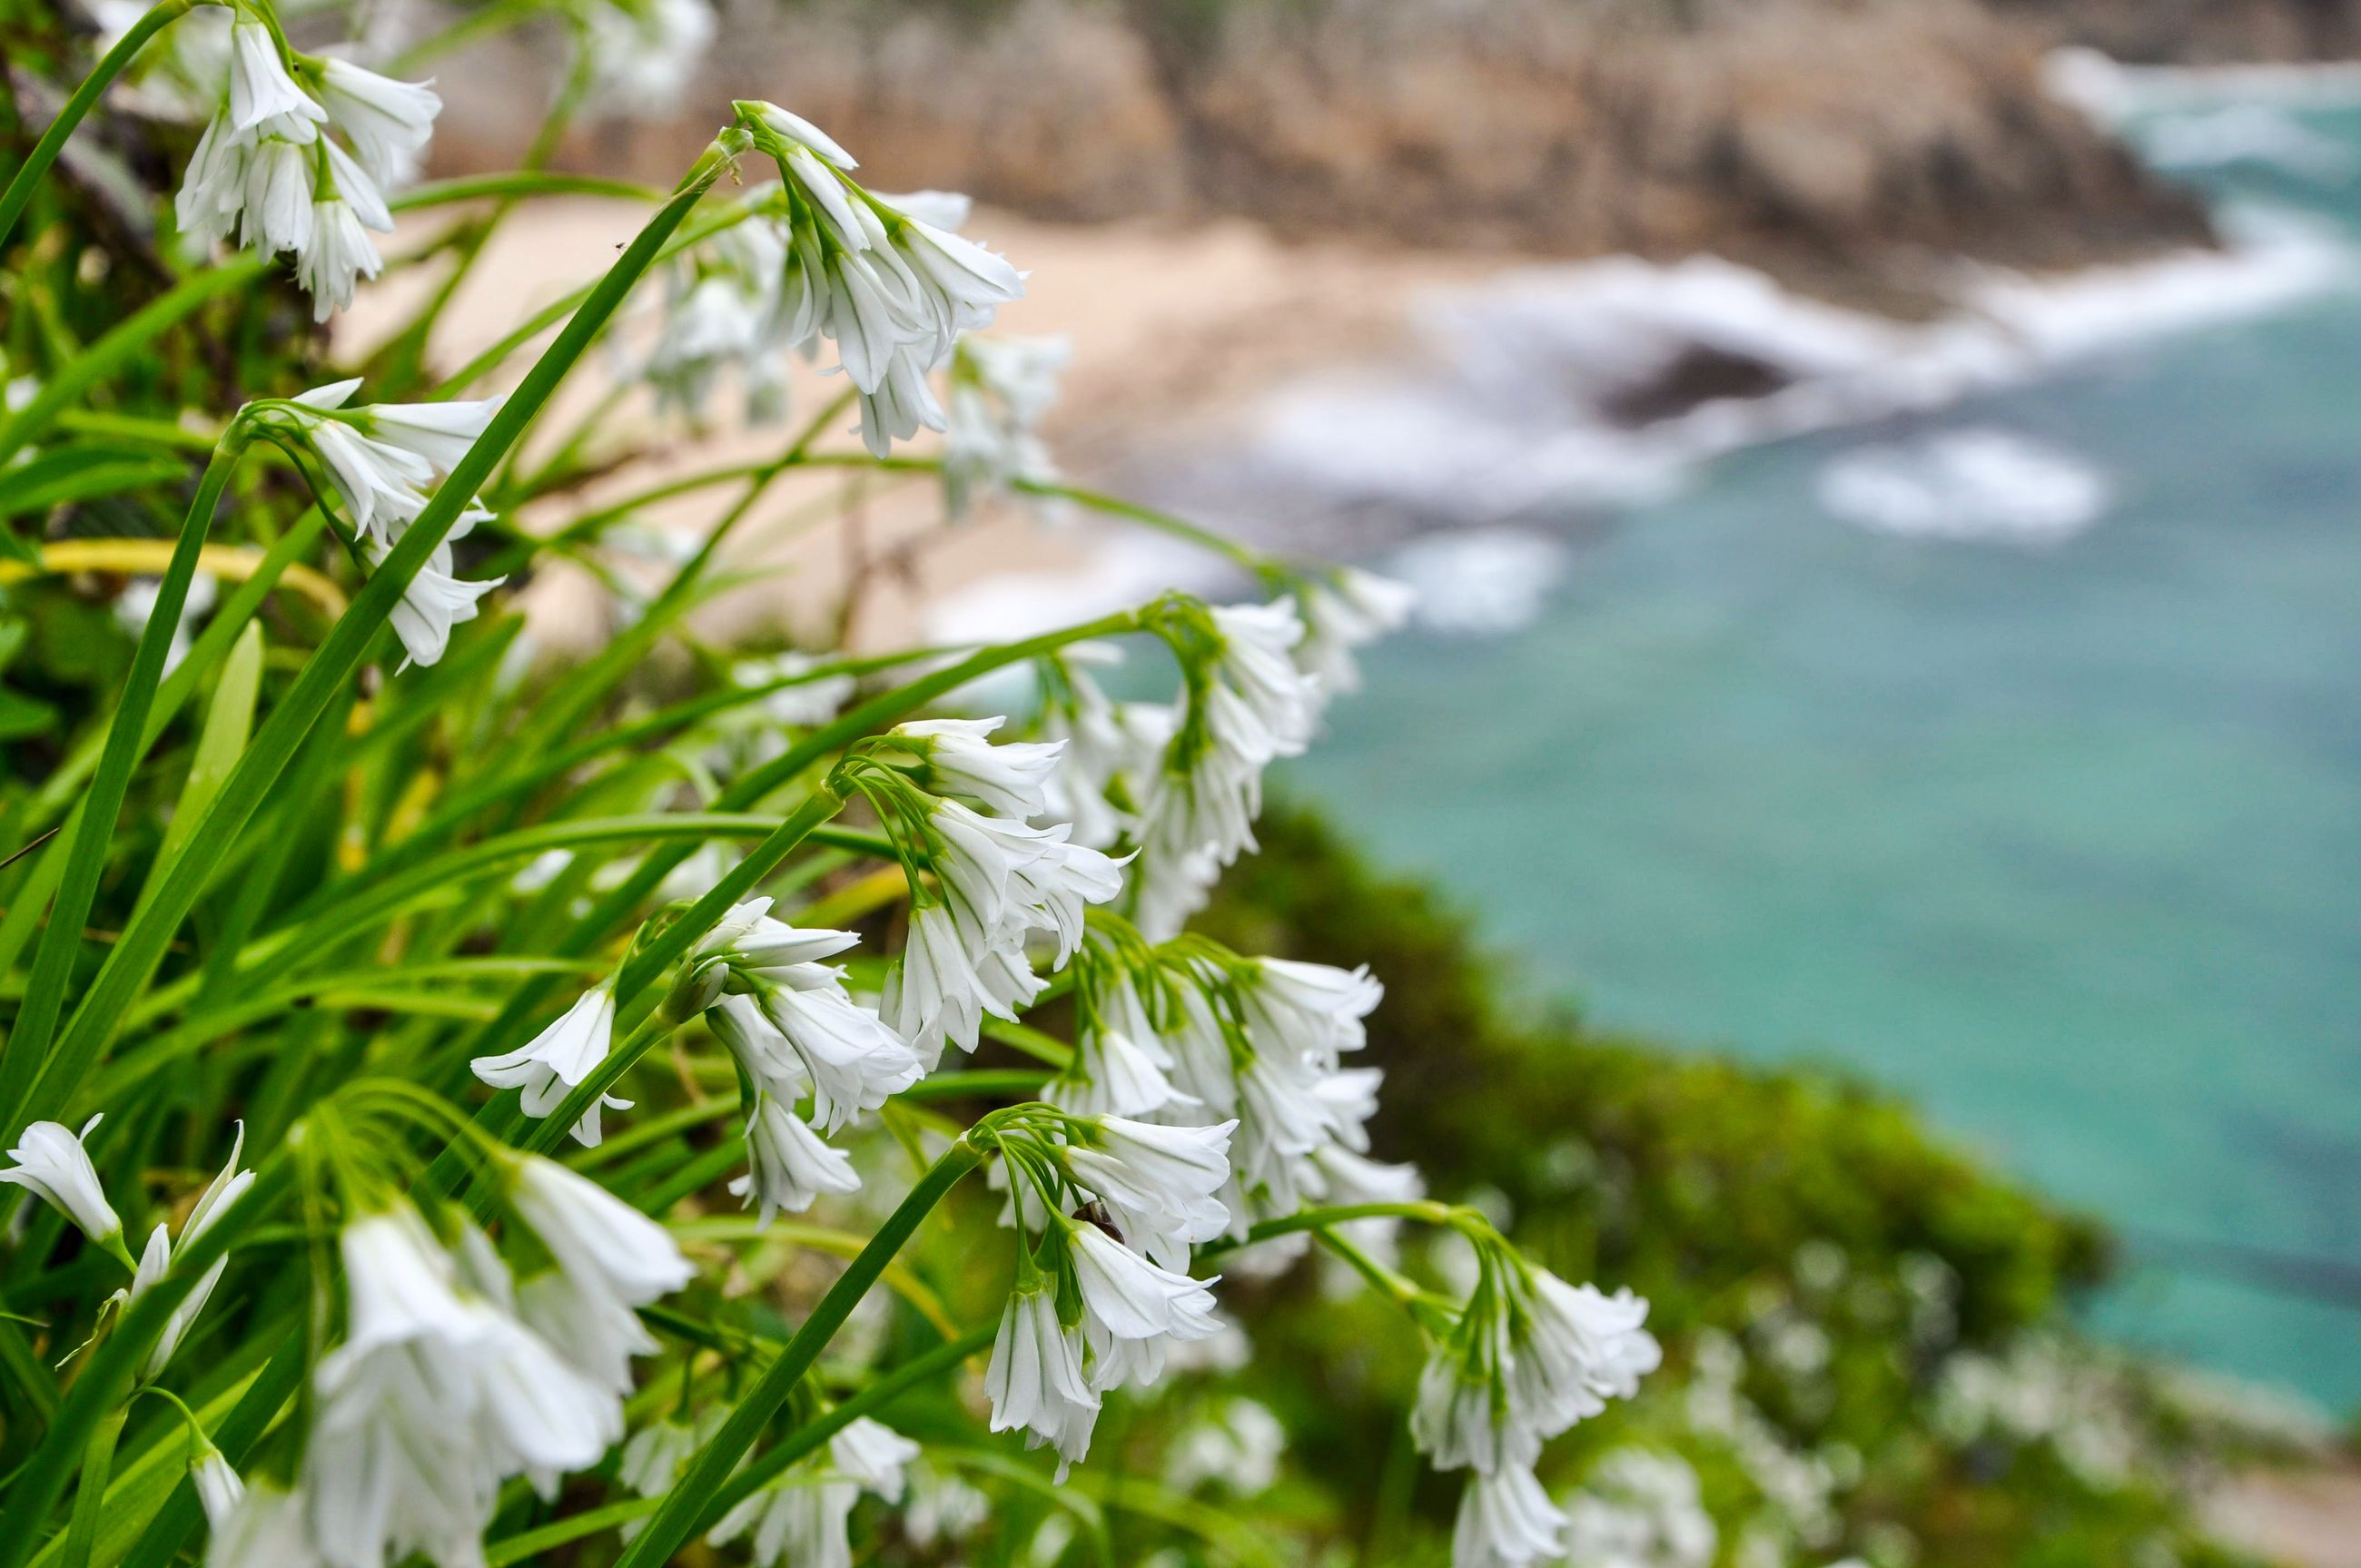 focus on foreground, growth, plant, leaf, close-up, nature, green color, beauty in nature, water, growing, freshness, selective focus, tranquility, day, stem, outdoors, green, no people, fragility, white color